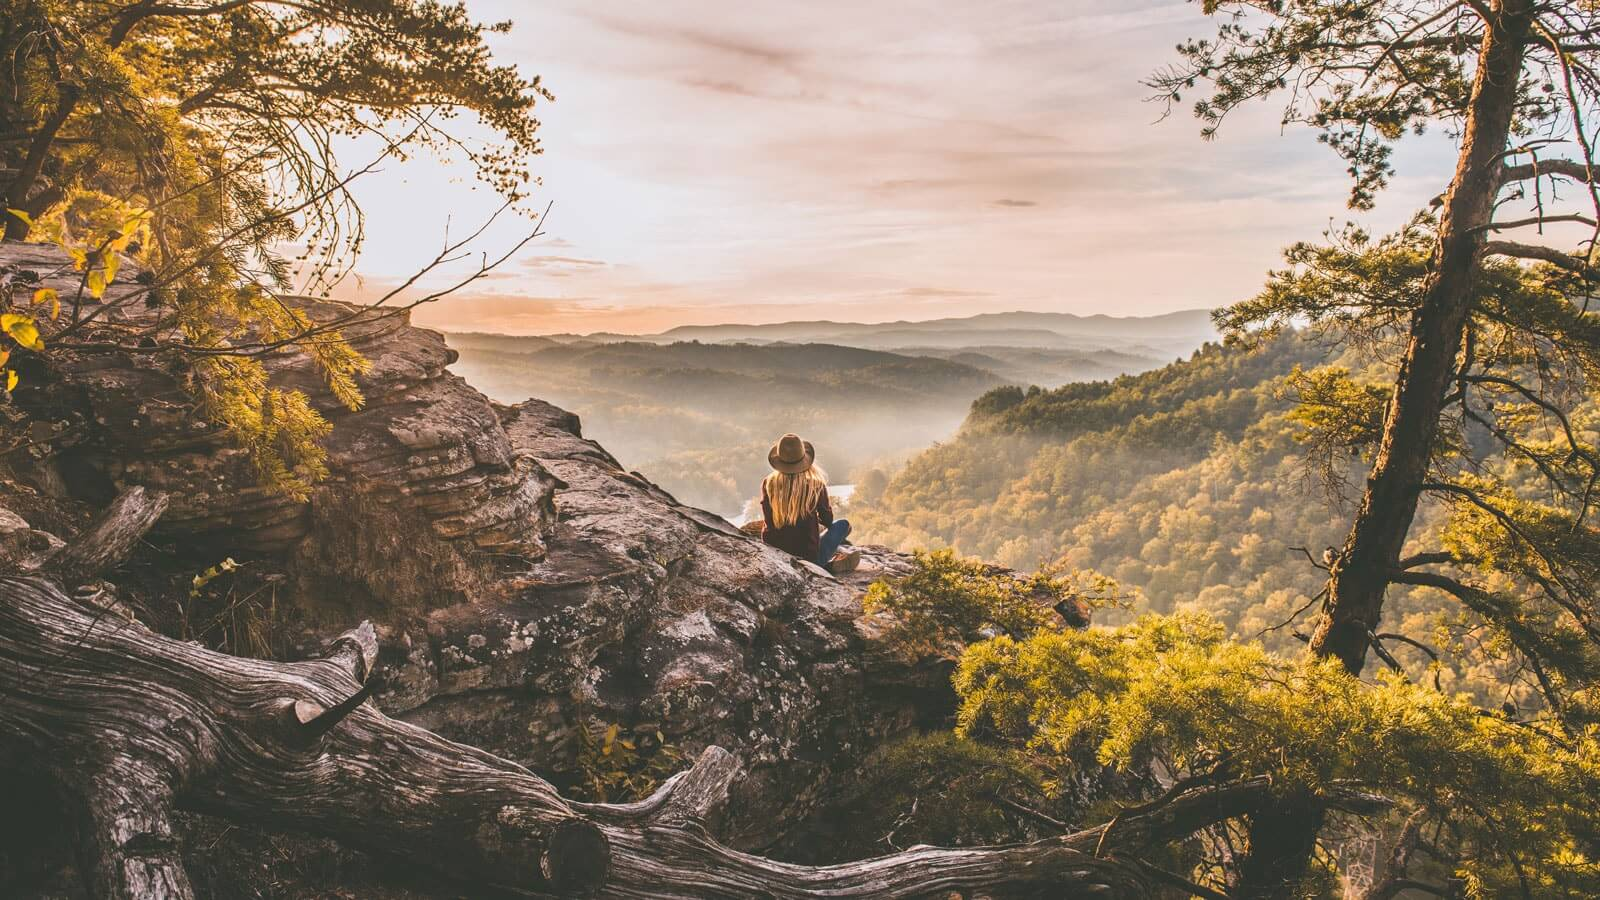 Sitting by a cliff